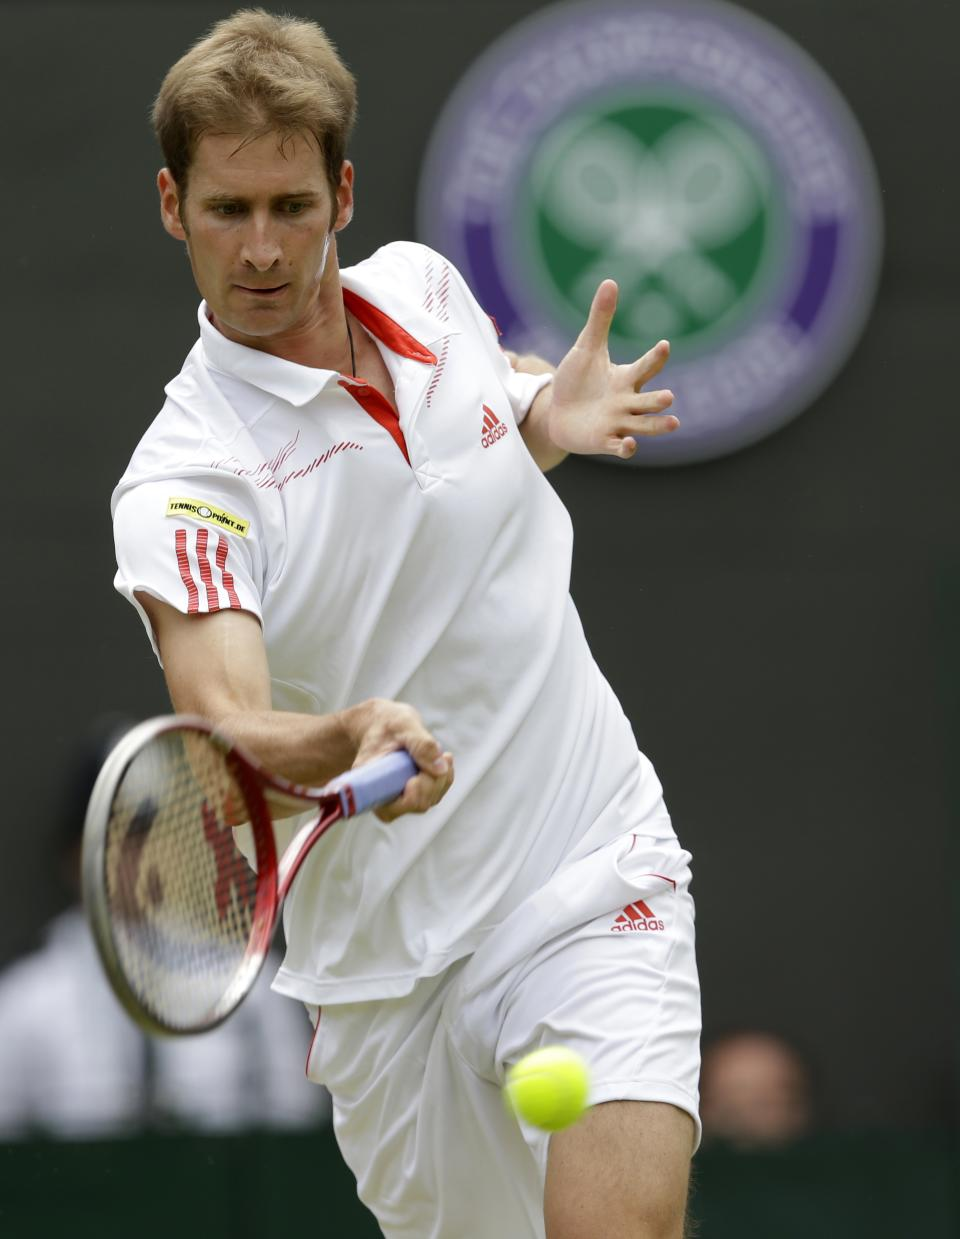 Florian Mayer of Germany plays a return to Novak Djokovic of Serbia during a quarterfinals match at the All England Lawn Tennis Championships at Wimbledon, England, Wednesday, July 4, 2012. (AP Photo/Kirsty Wigglesworth)